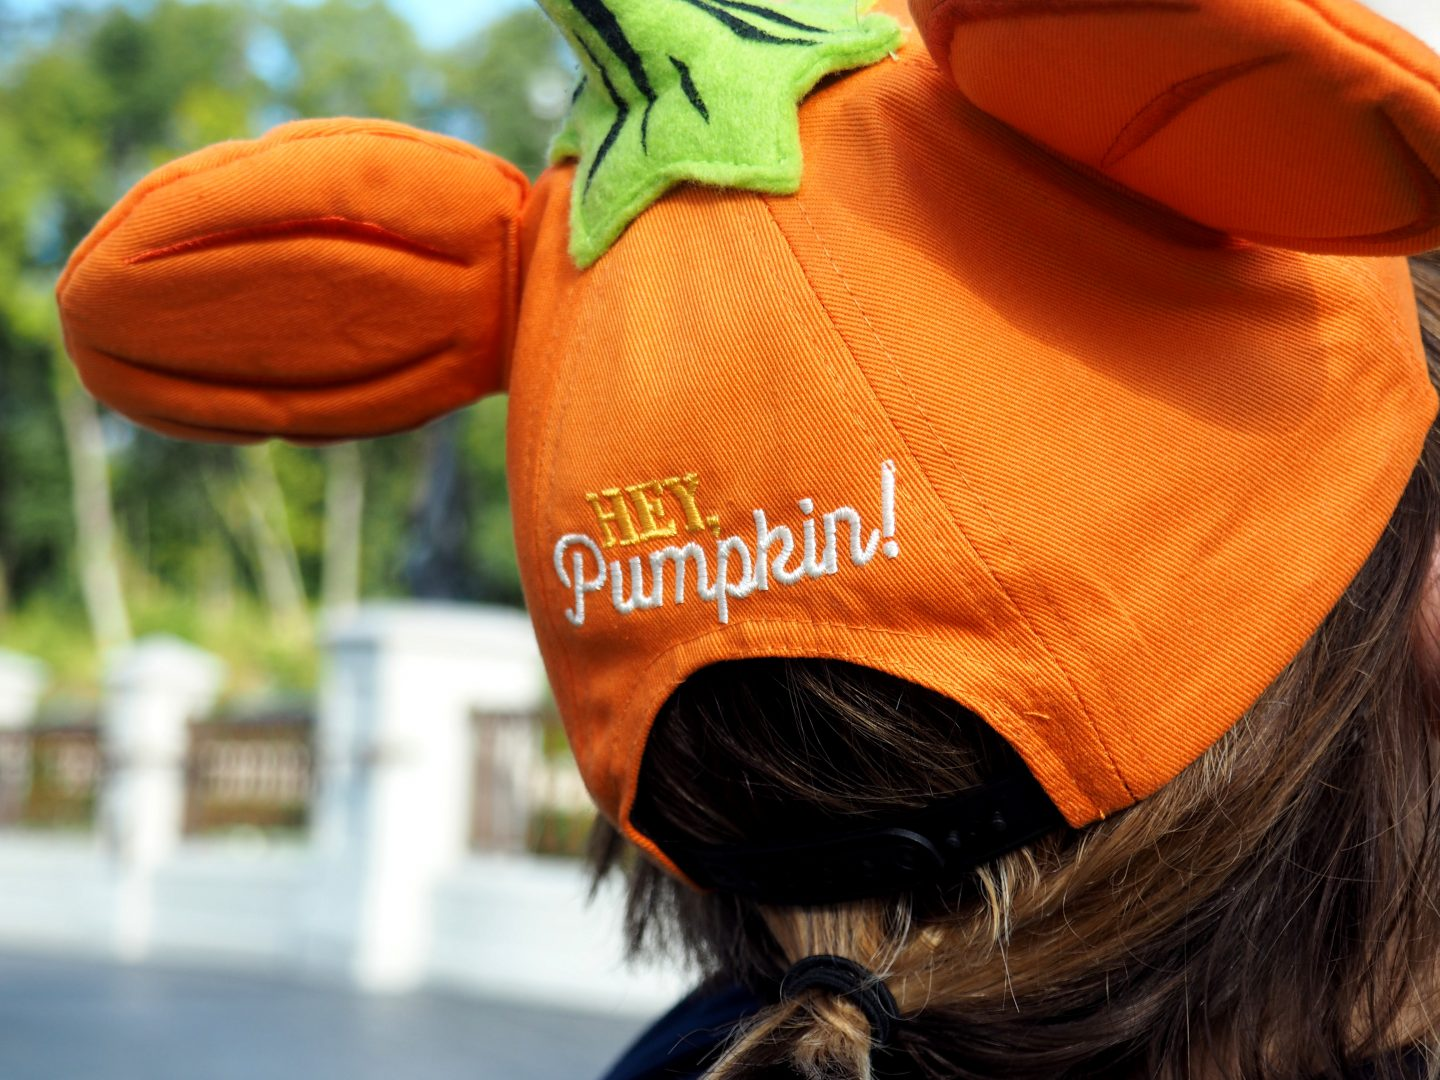 halloween at walt disney world hey pumpkin hat at mickey's not so scary halloween party #disneyhalloweenmerchandise #disneystyle